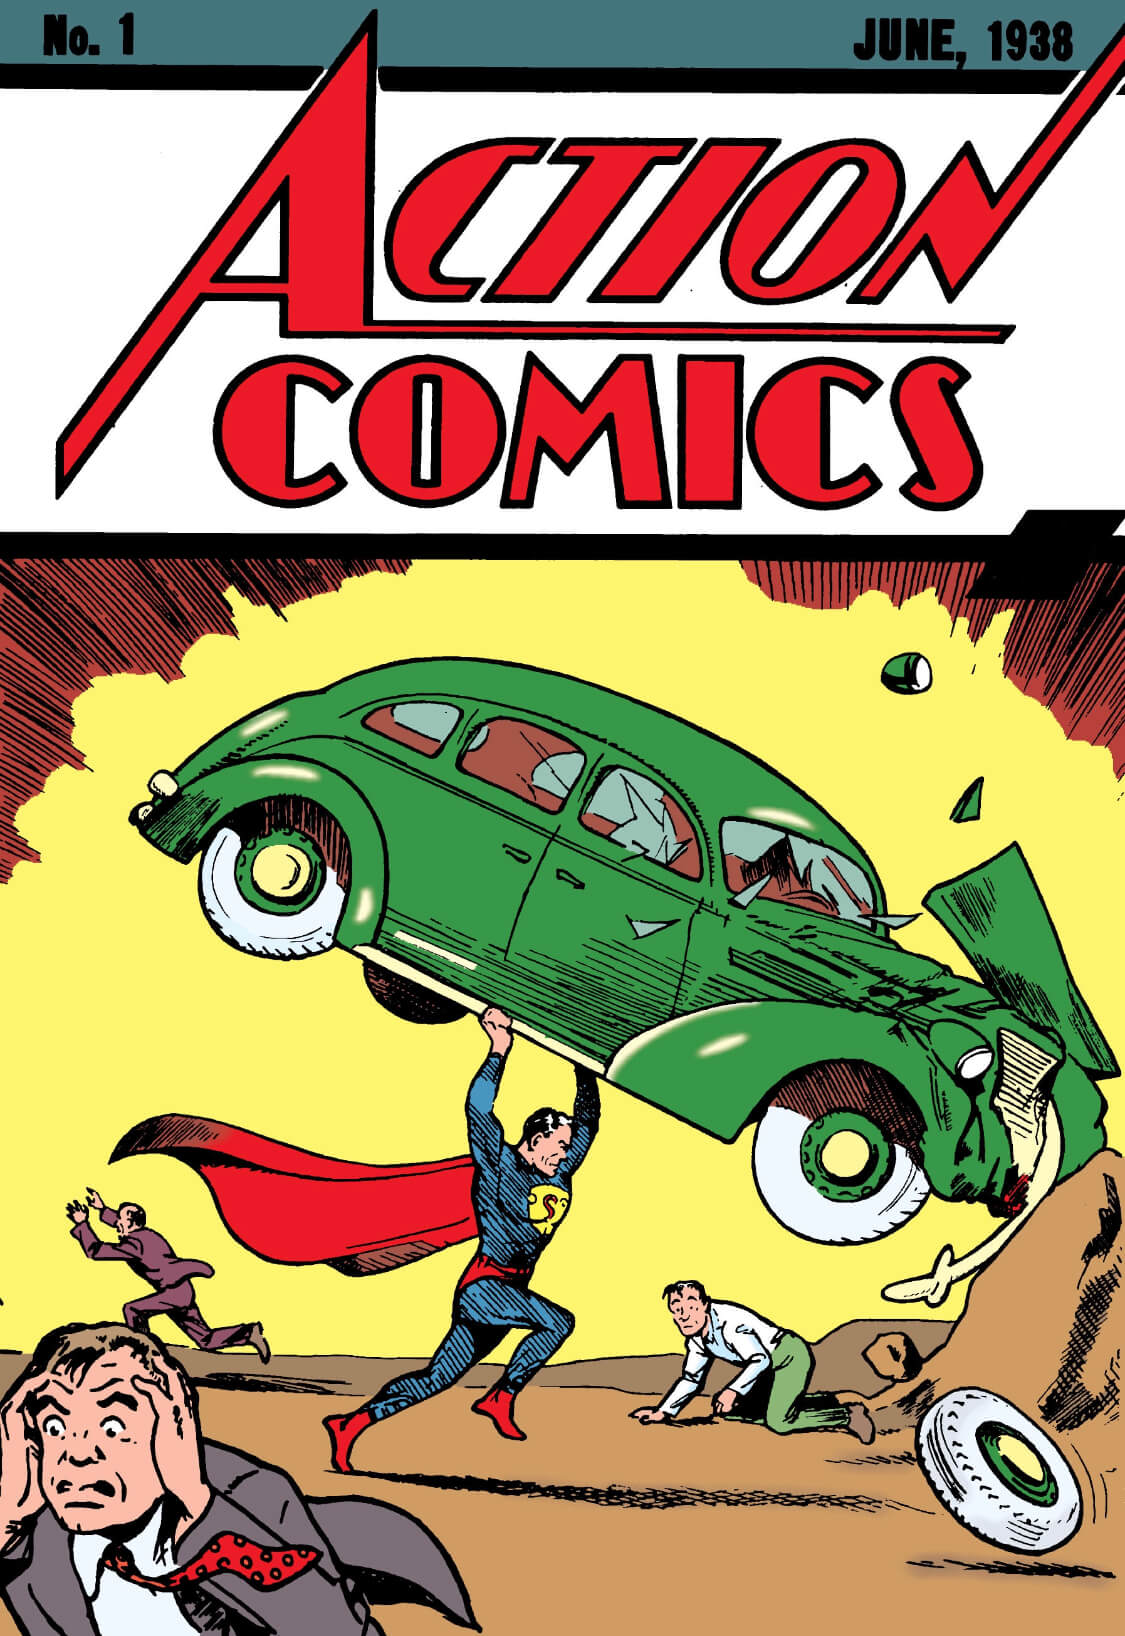 Action-Comics-1-cover.jpg